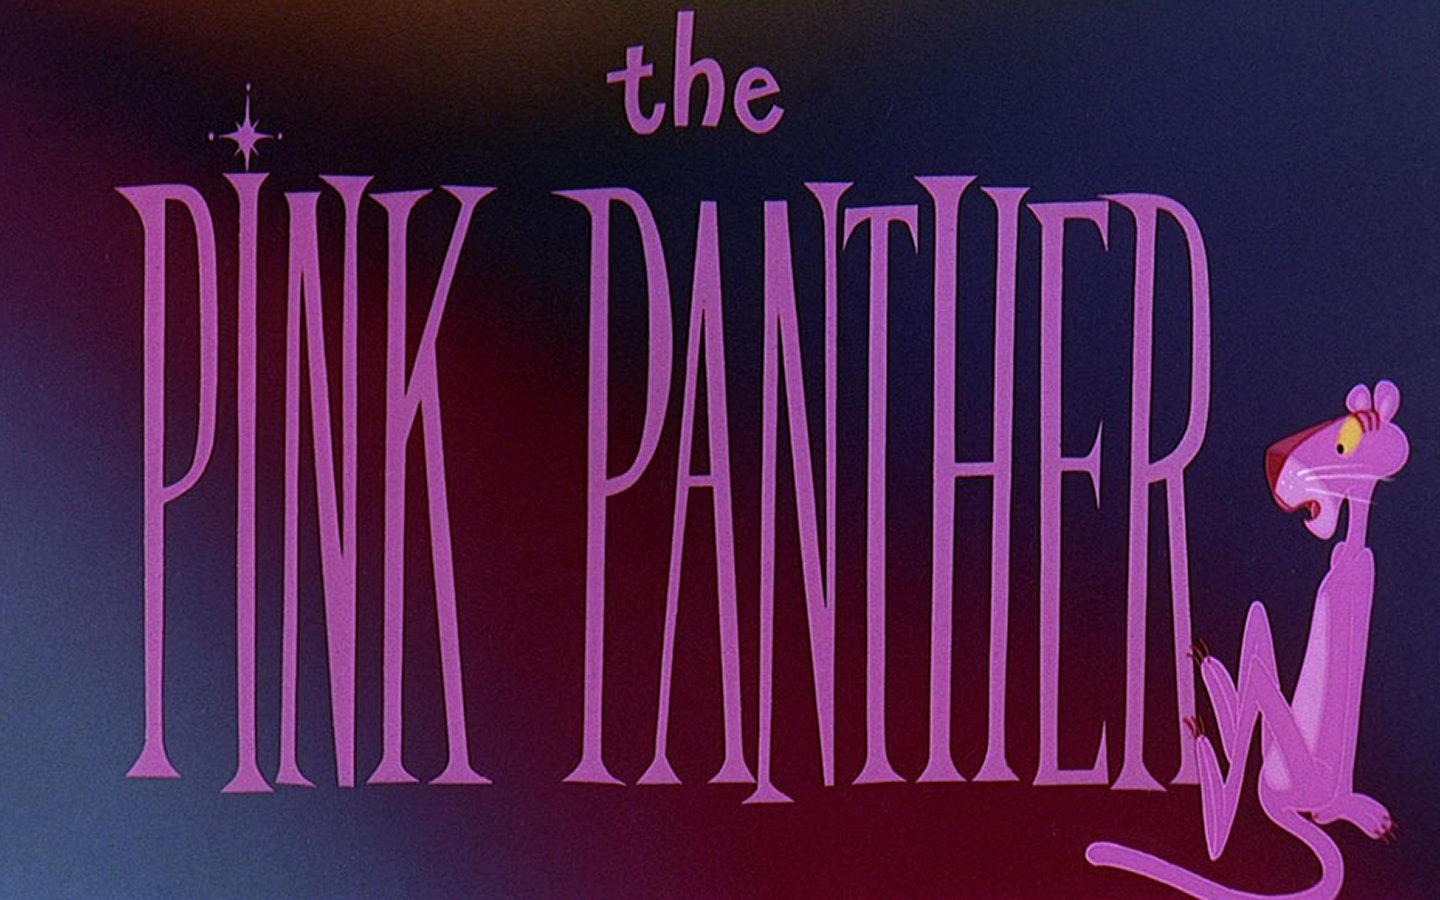 Free Download Pink Panther Wallpaper ID384855 Hd 1440x900 For Computer